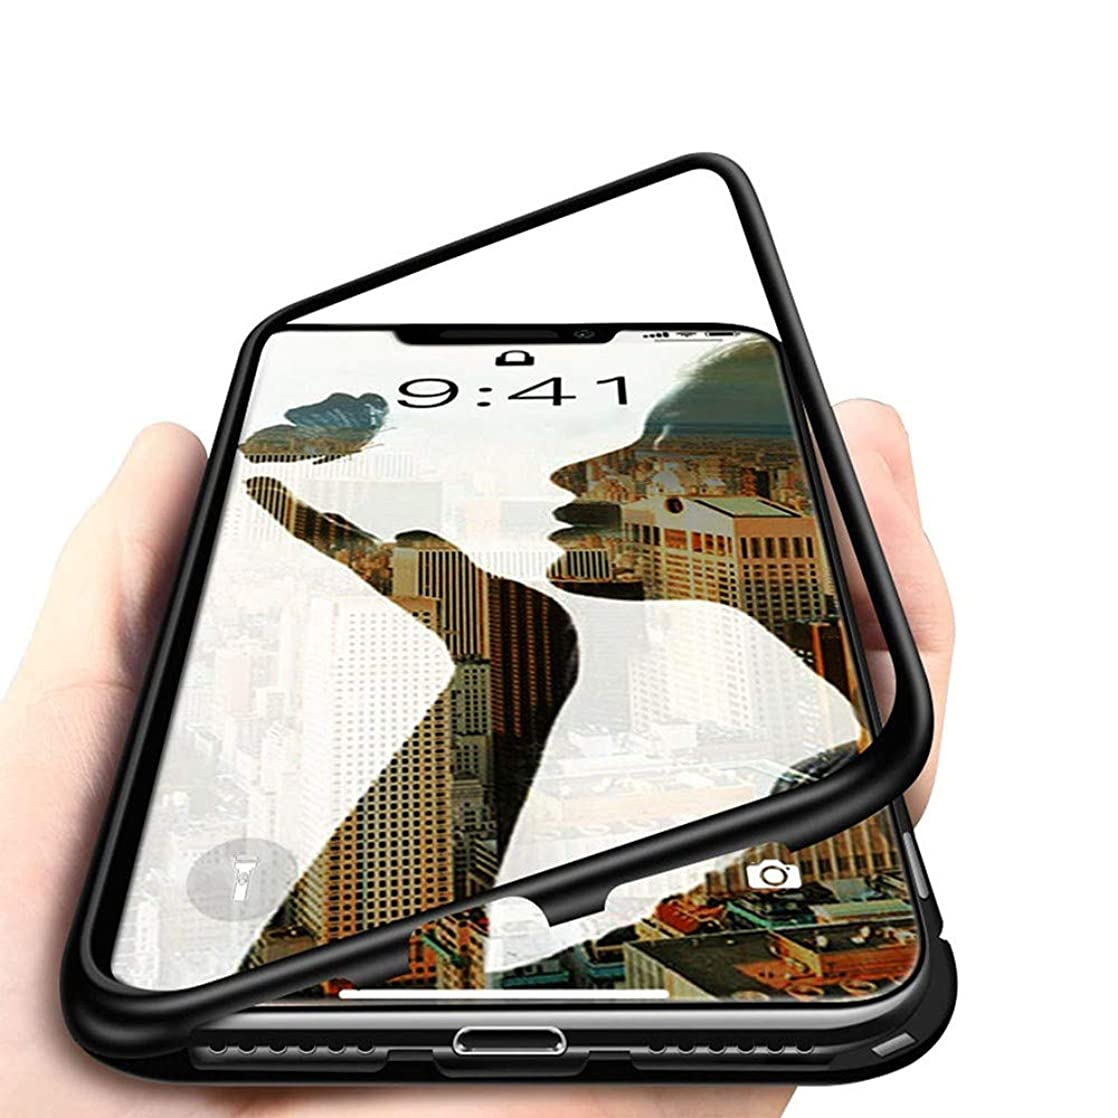 Fits iPhone Xs Max Mayunn Luxury Magnetic Adsorption Metal Bumper Glass Case Cover fit iPhone Xs Max (Black) iilfcbsa77285